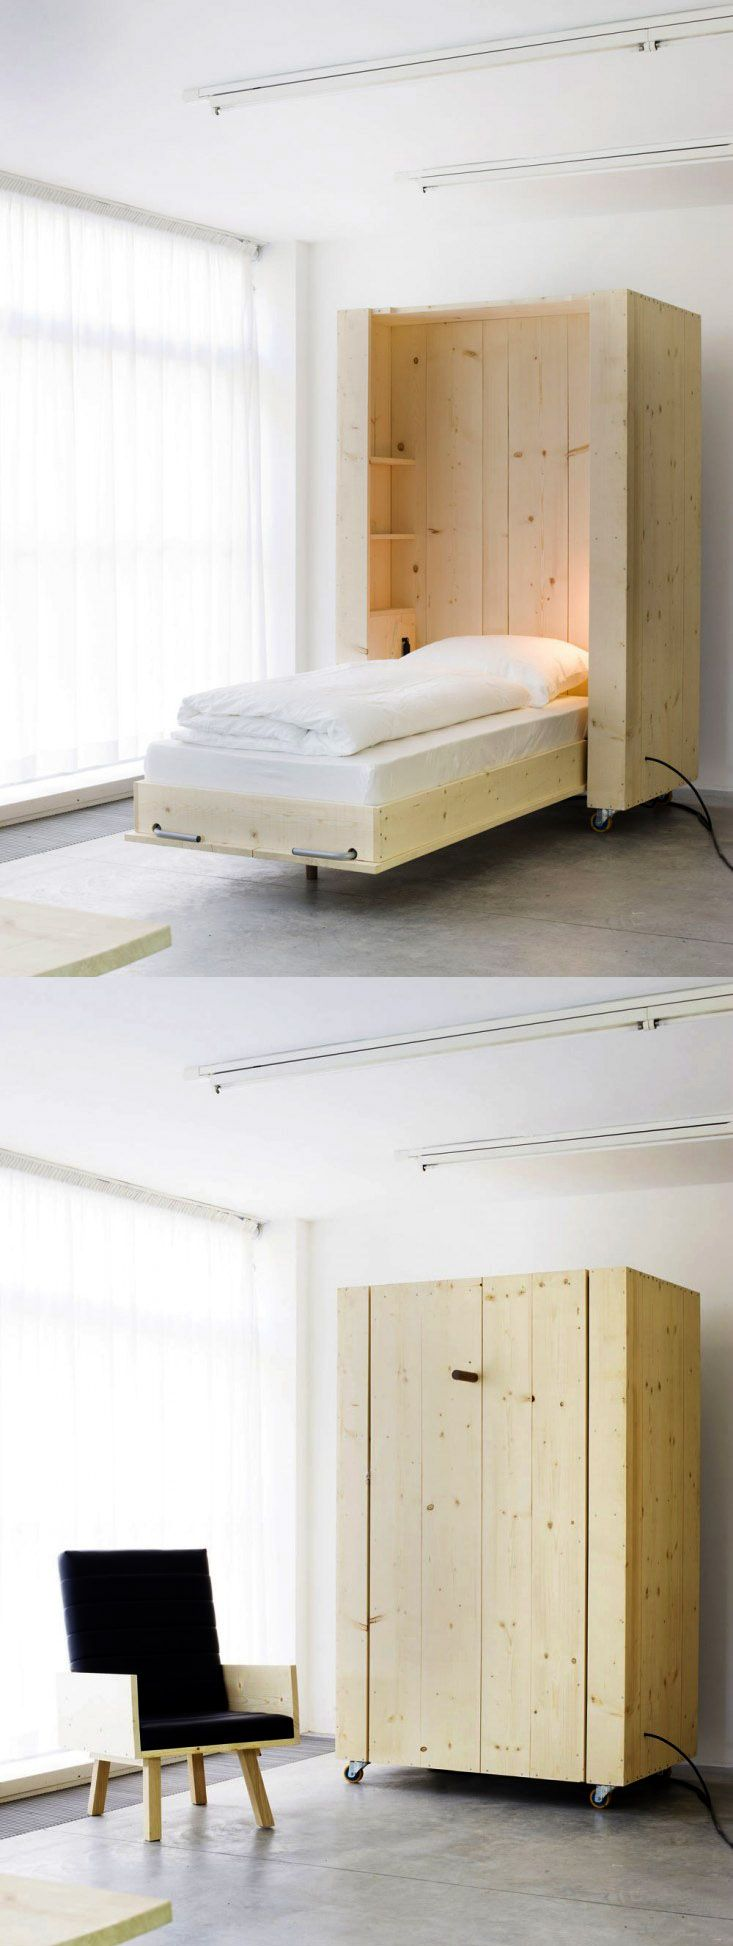 Home bedroom guest room hide a bed cabinet - Find This Pin And More On Home By Lexieburnett A Hidden Bed